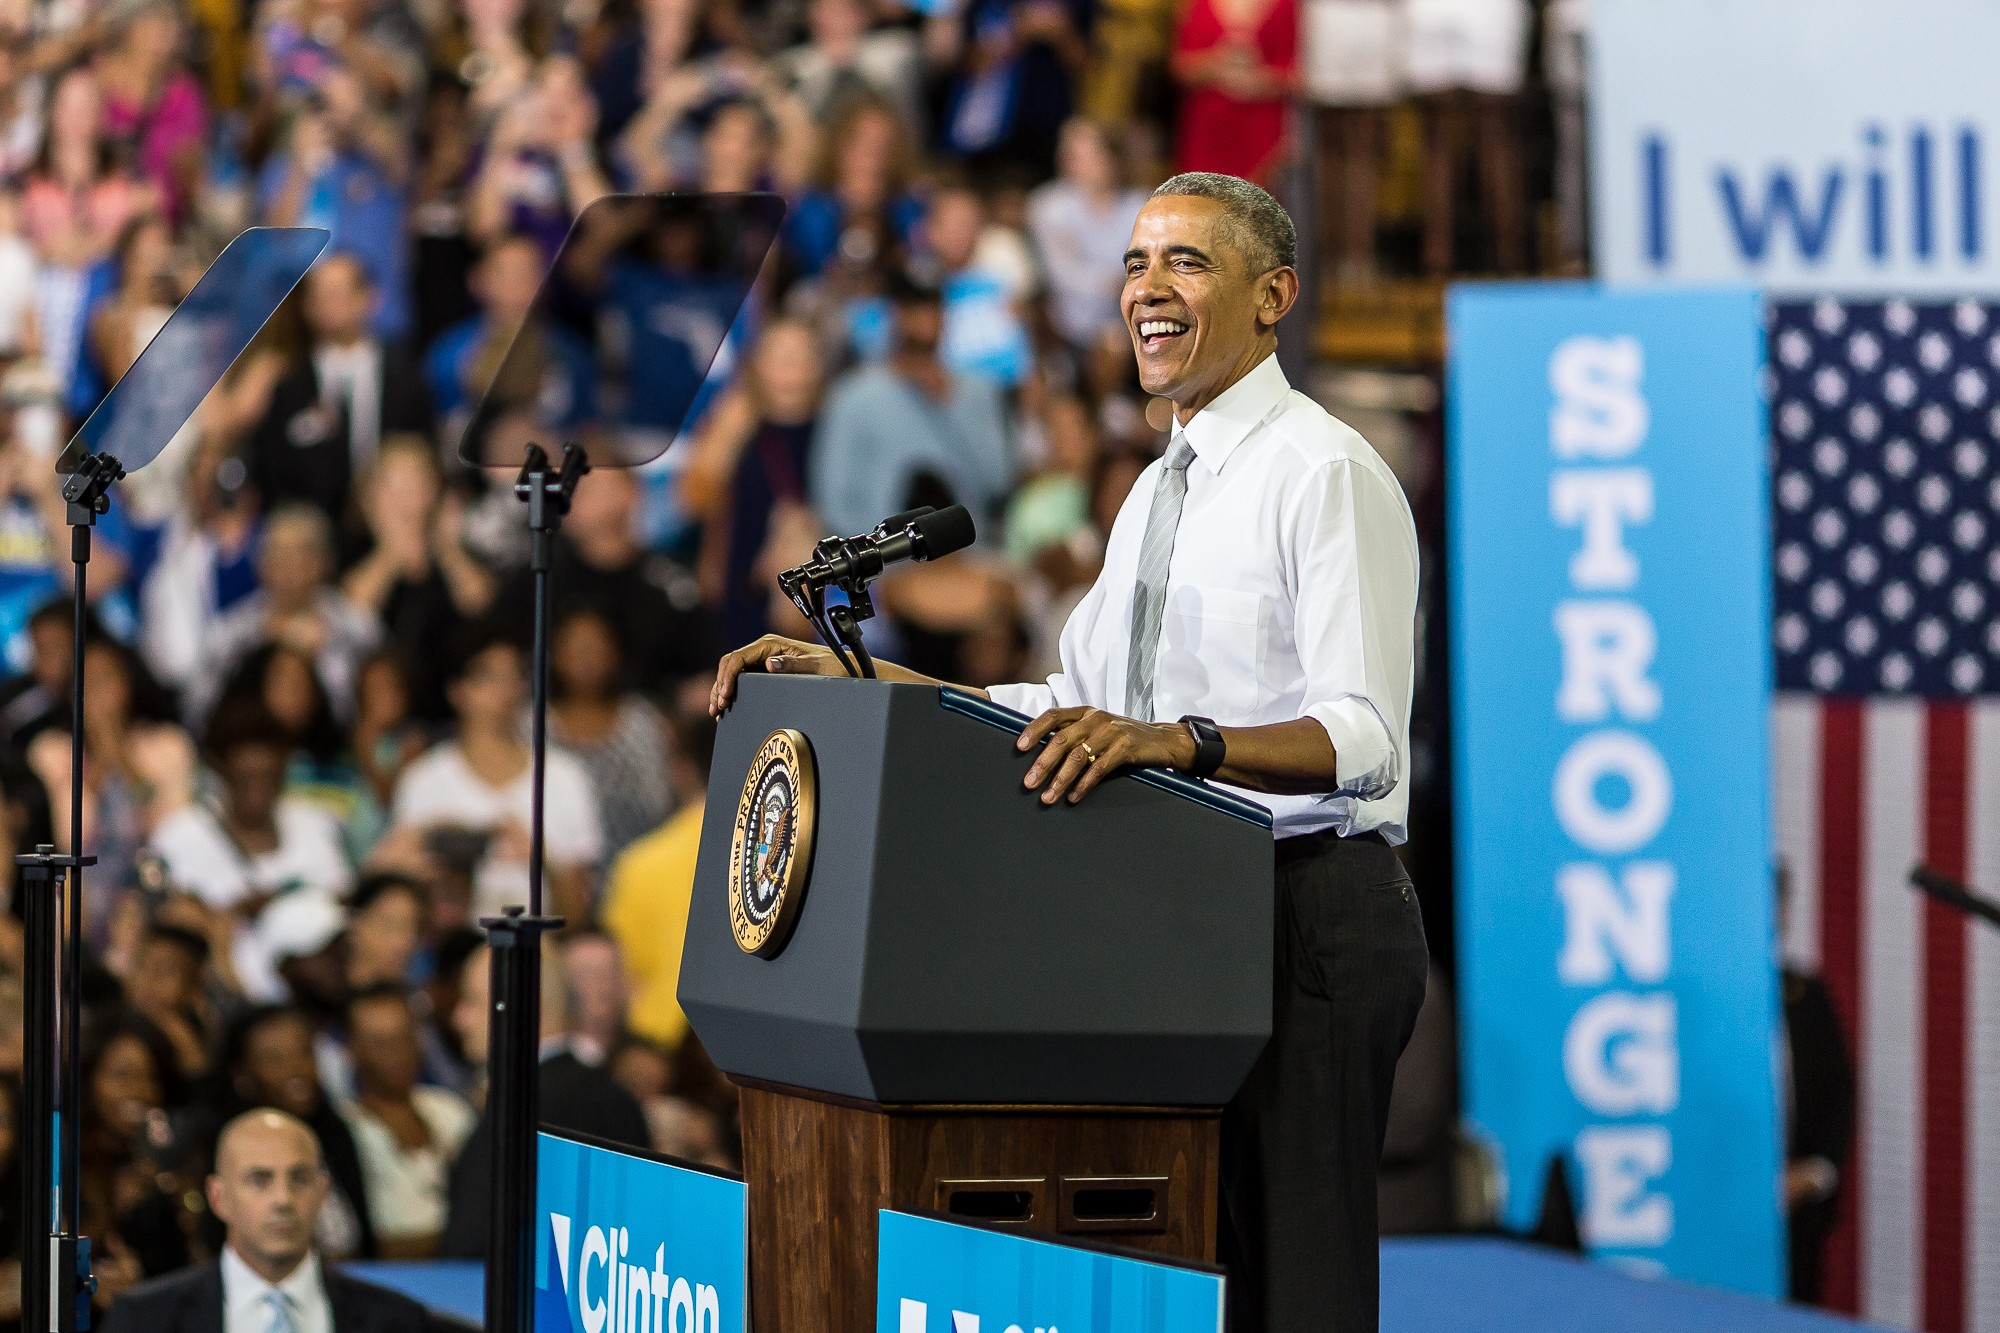 President Obama encourages voting at Capital University rally